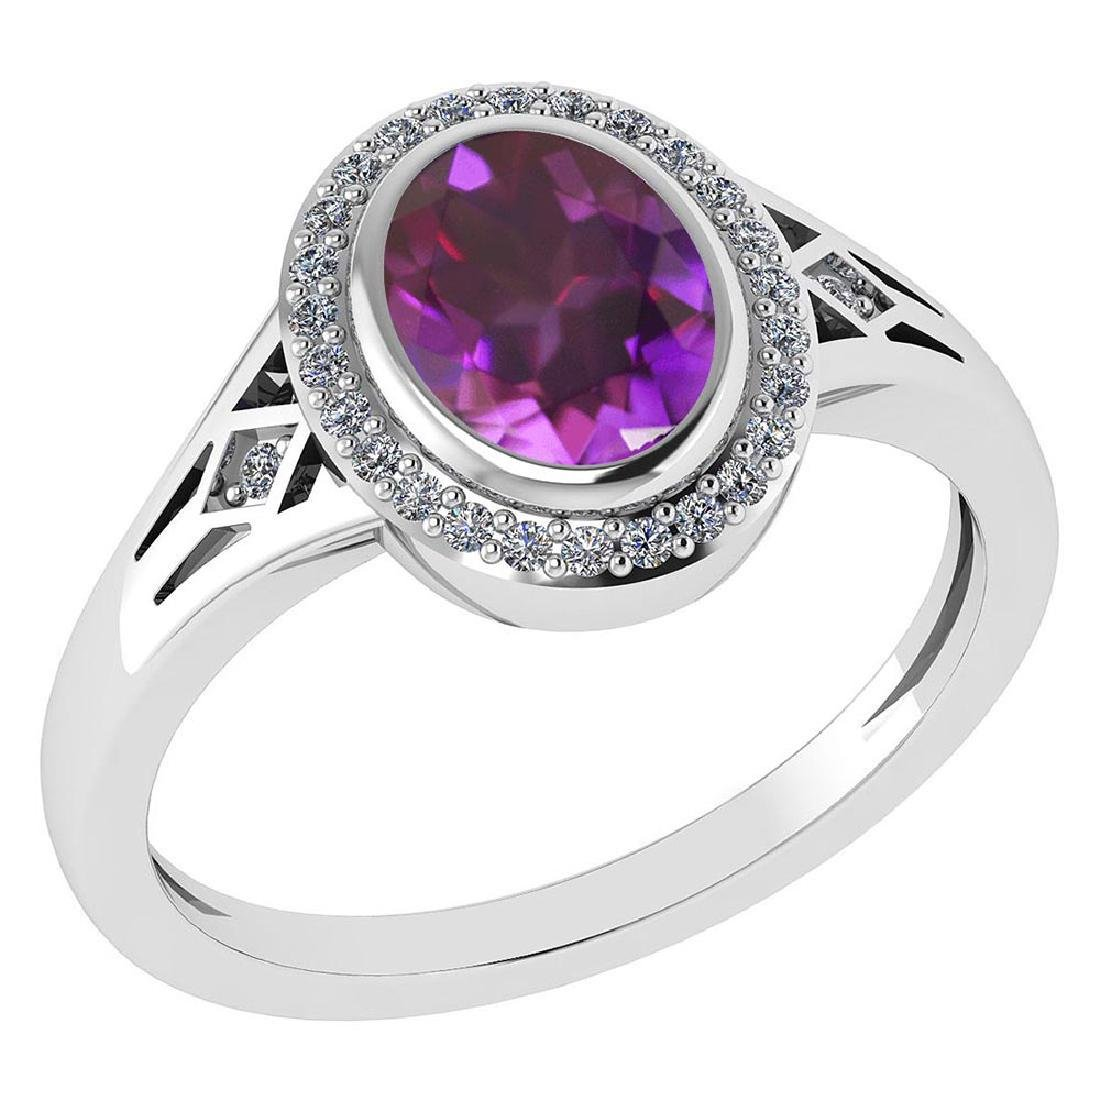 Certified 1.39 Ctw Amethyst And Diamond 14k White Gold